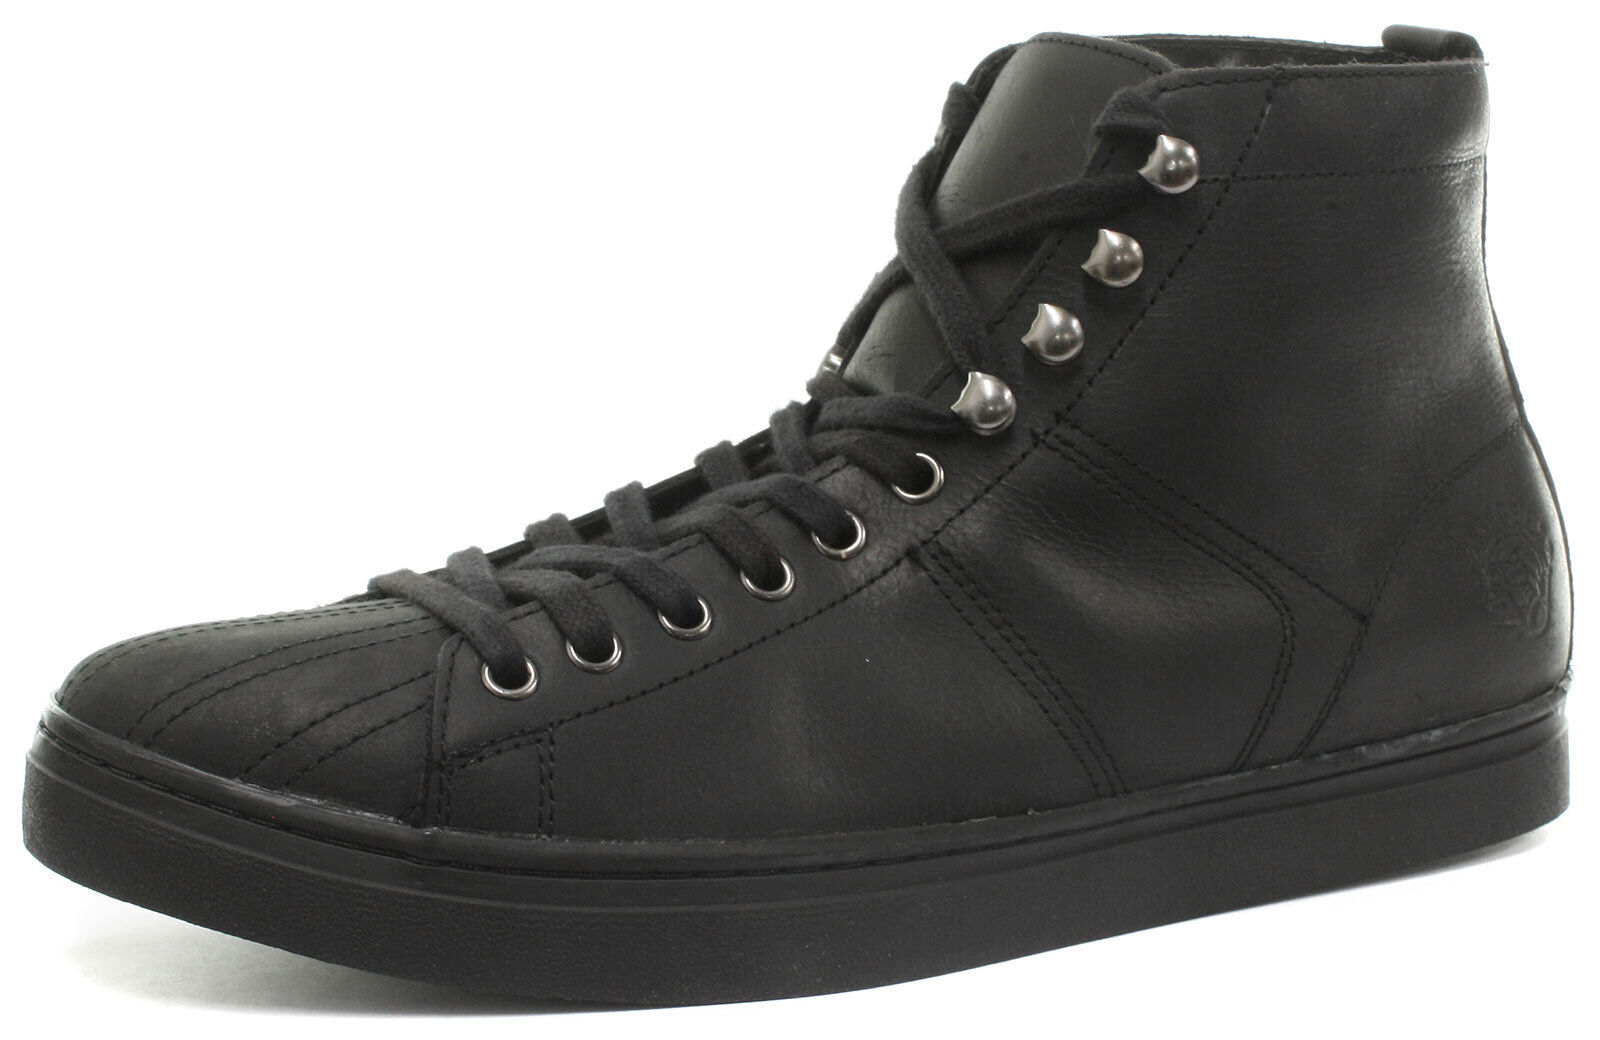 New Grinders Max Black Unisex Trainer Style Mid Cut Leather Upper Lace Up Shoes